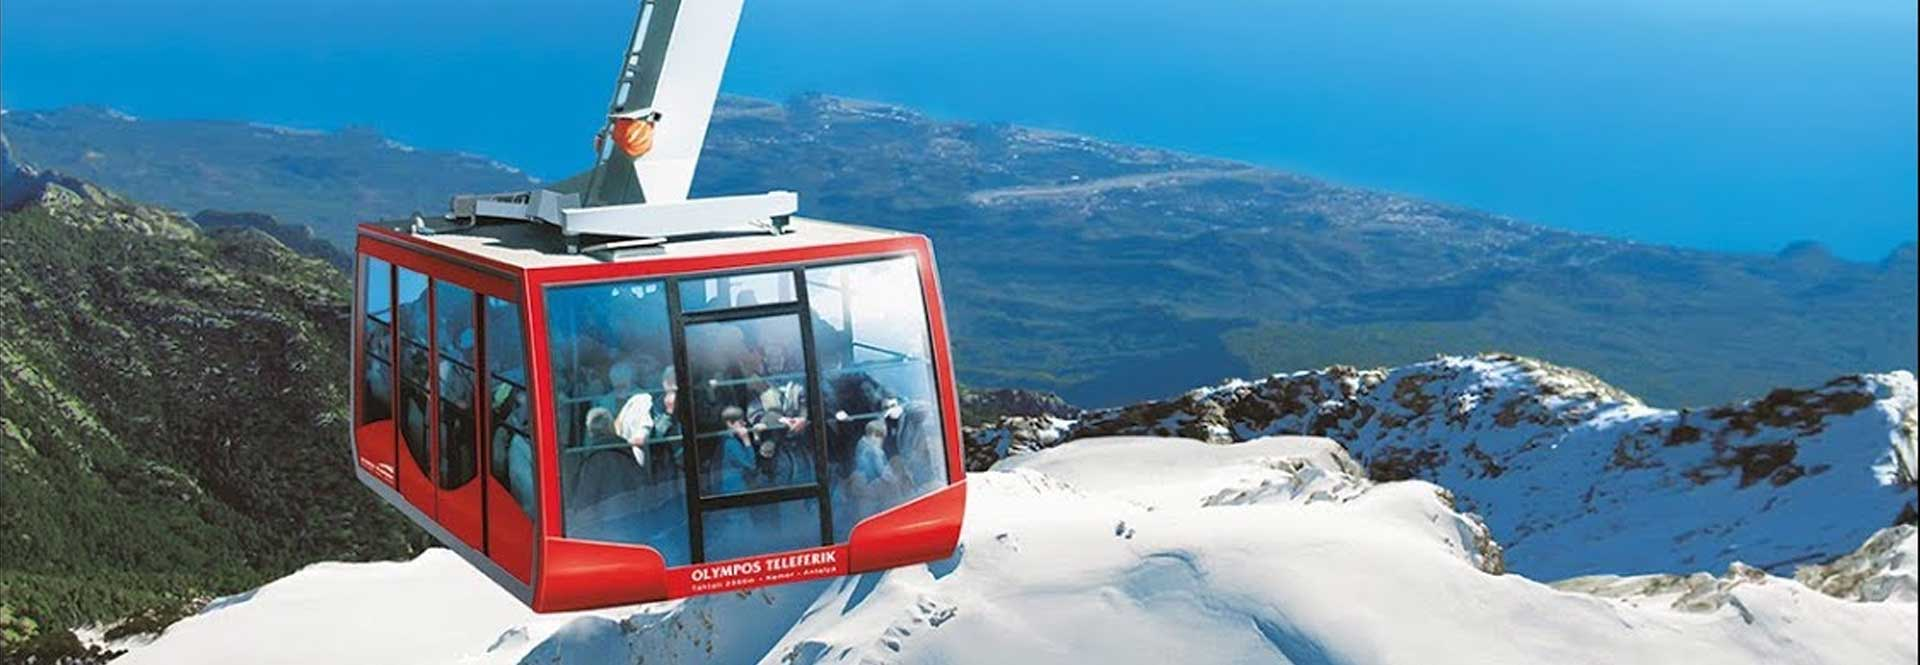 Cable car tekirova antalya